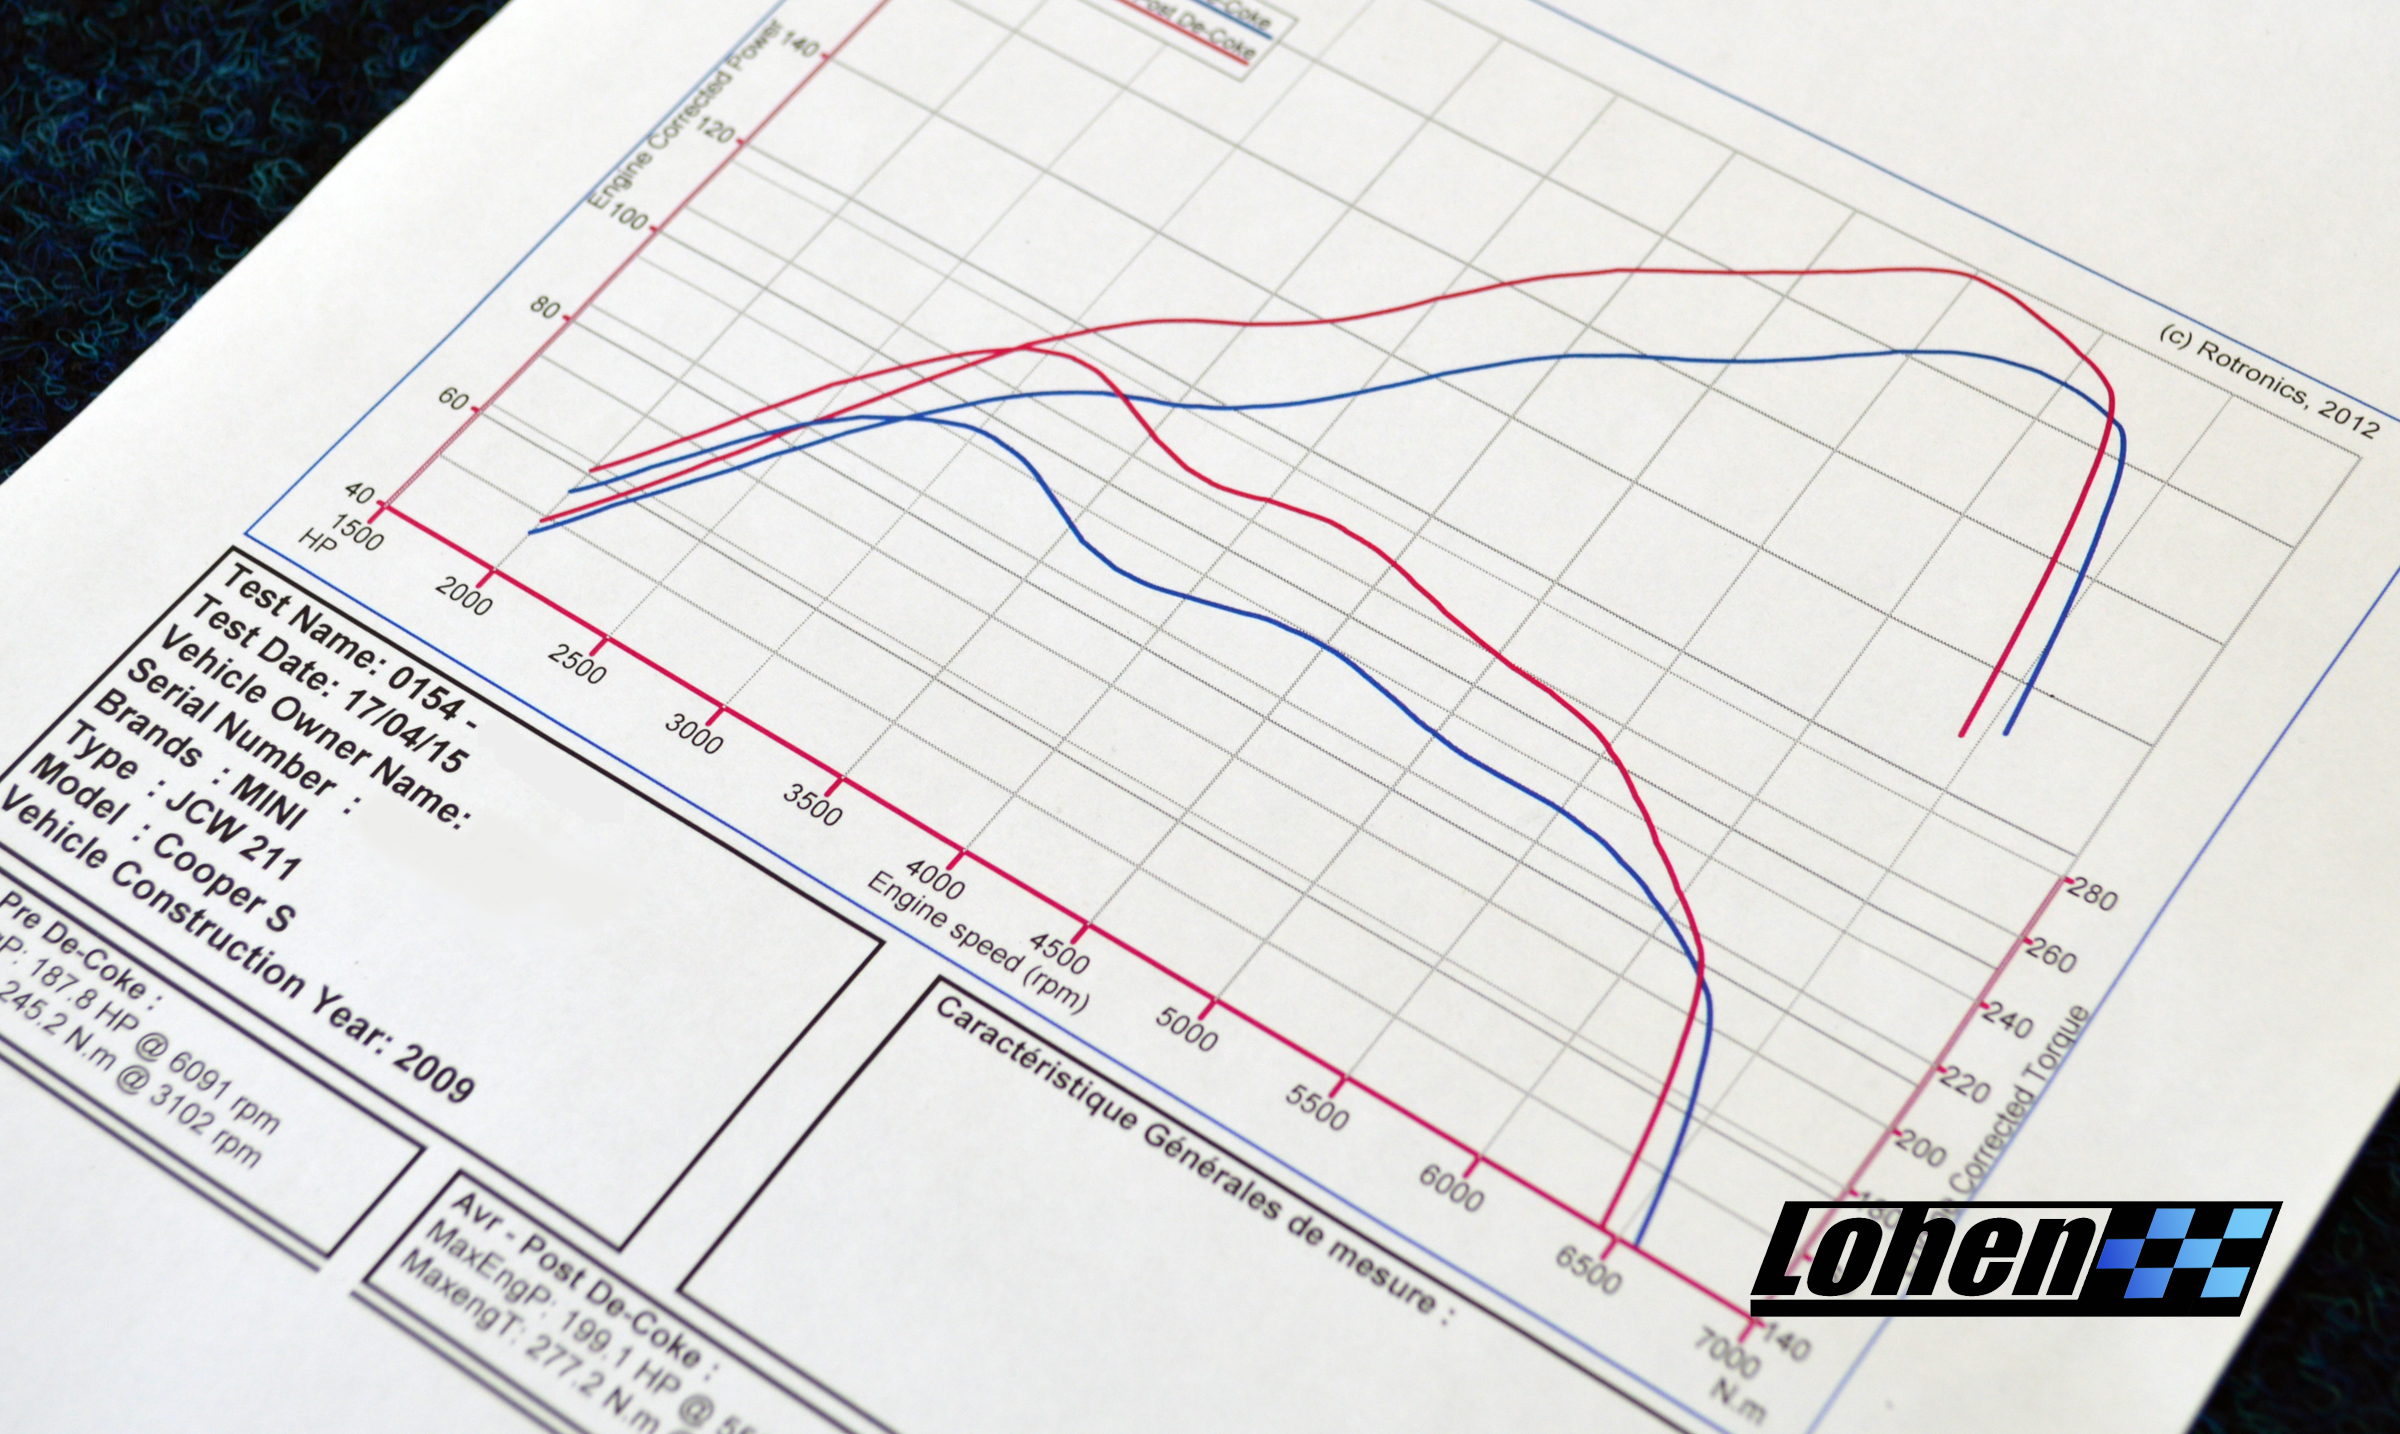 Gen 2 Jcw In For Engine De Coke And Manic Stage 2 Map